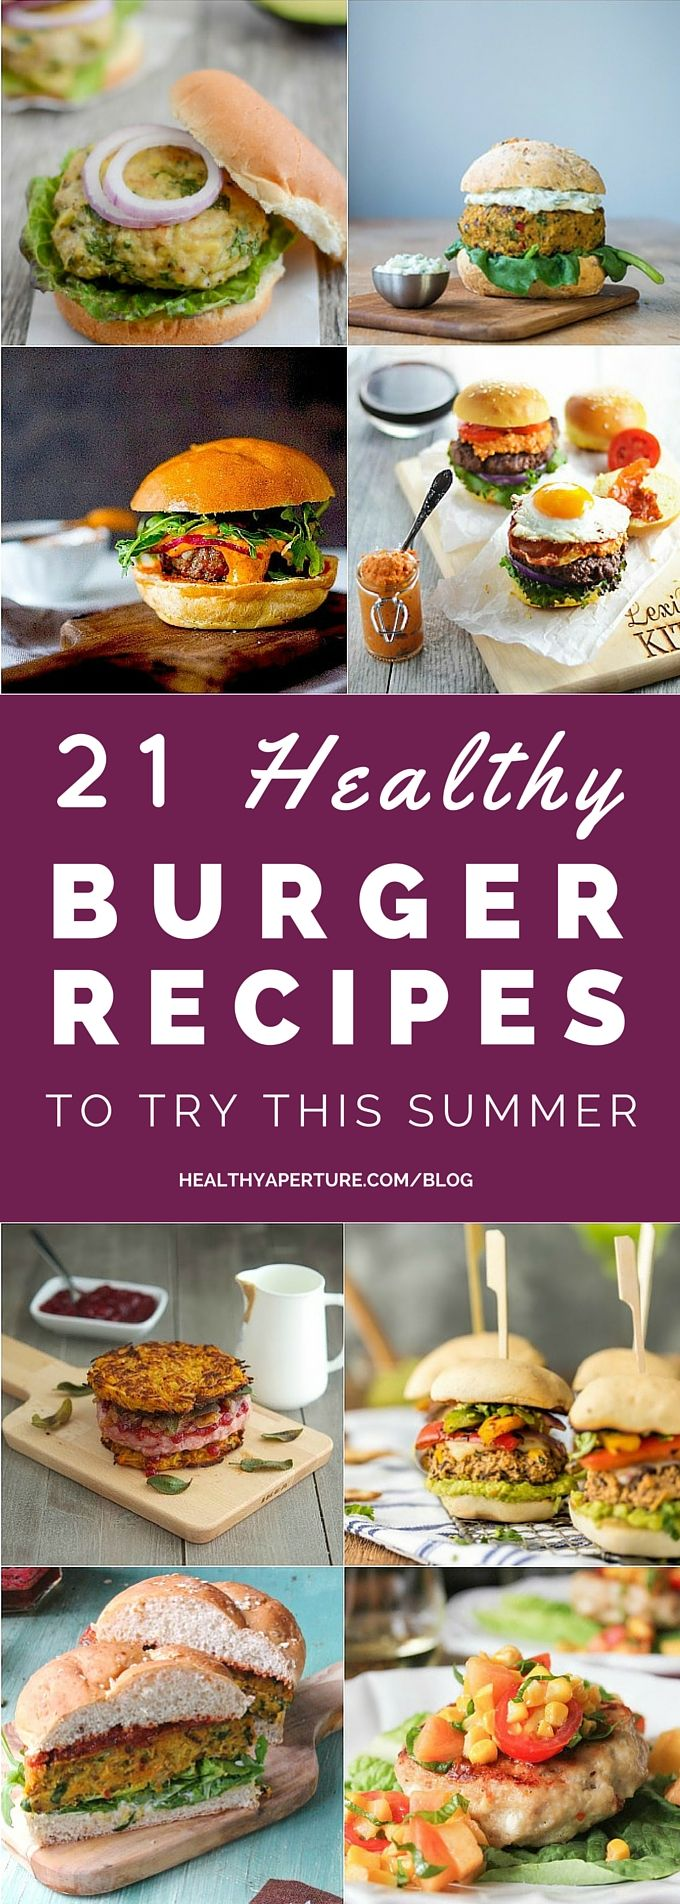 Tired of the same boring burger? Here are 21 Healthy Burger Recipes to try this summer for lunch or dinner.